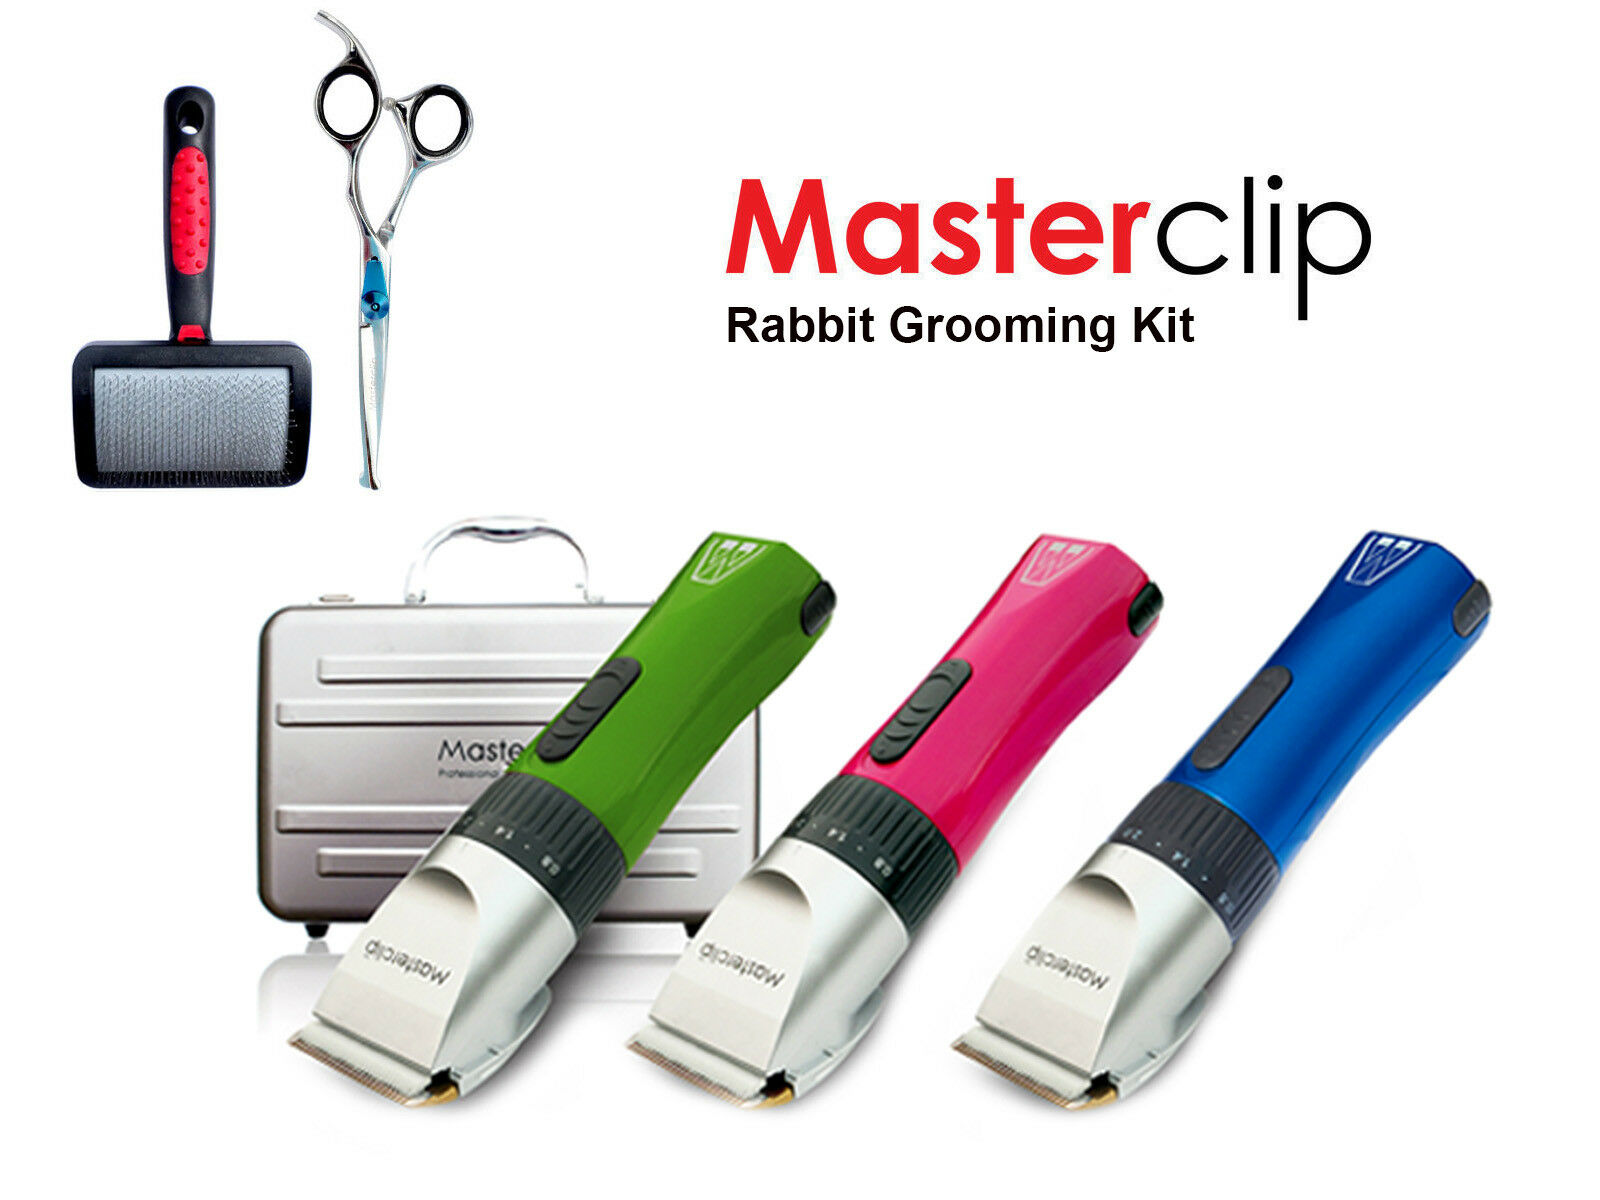 Cordless Rabbit Trimming Clipper Grooming Kit with Scissors & Brush - Masterclip